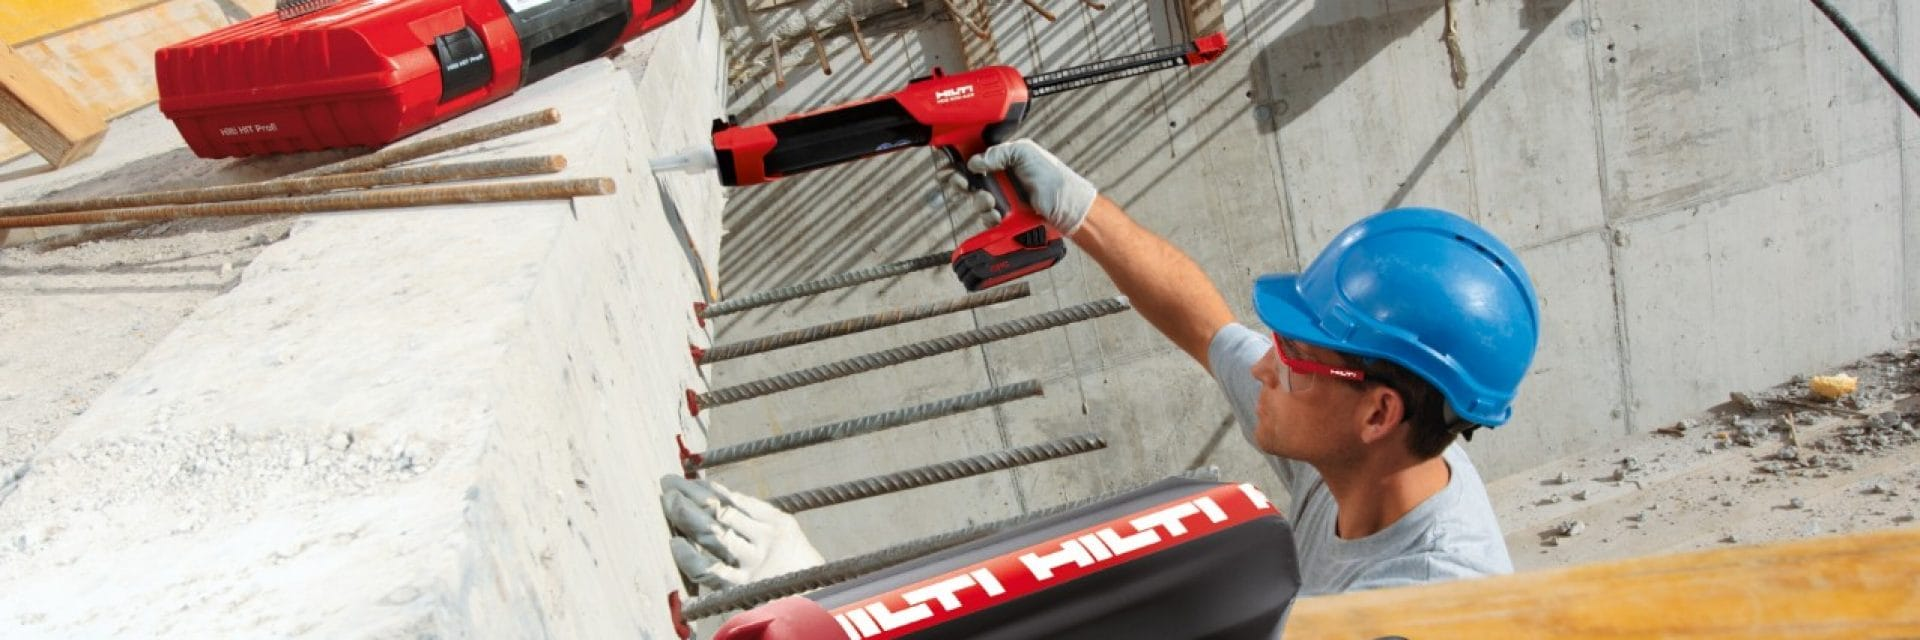 Hilti installers training for rebar installations